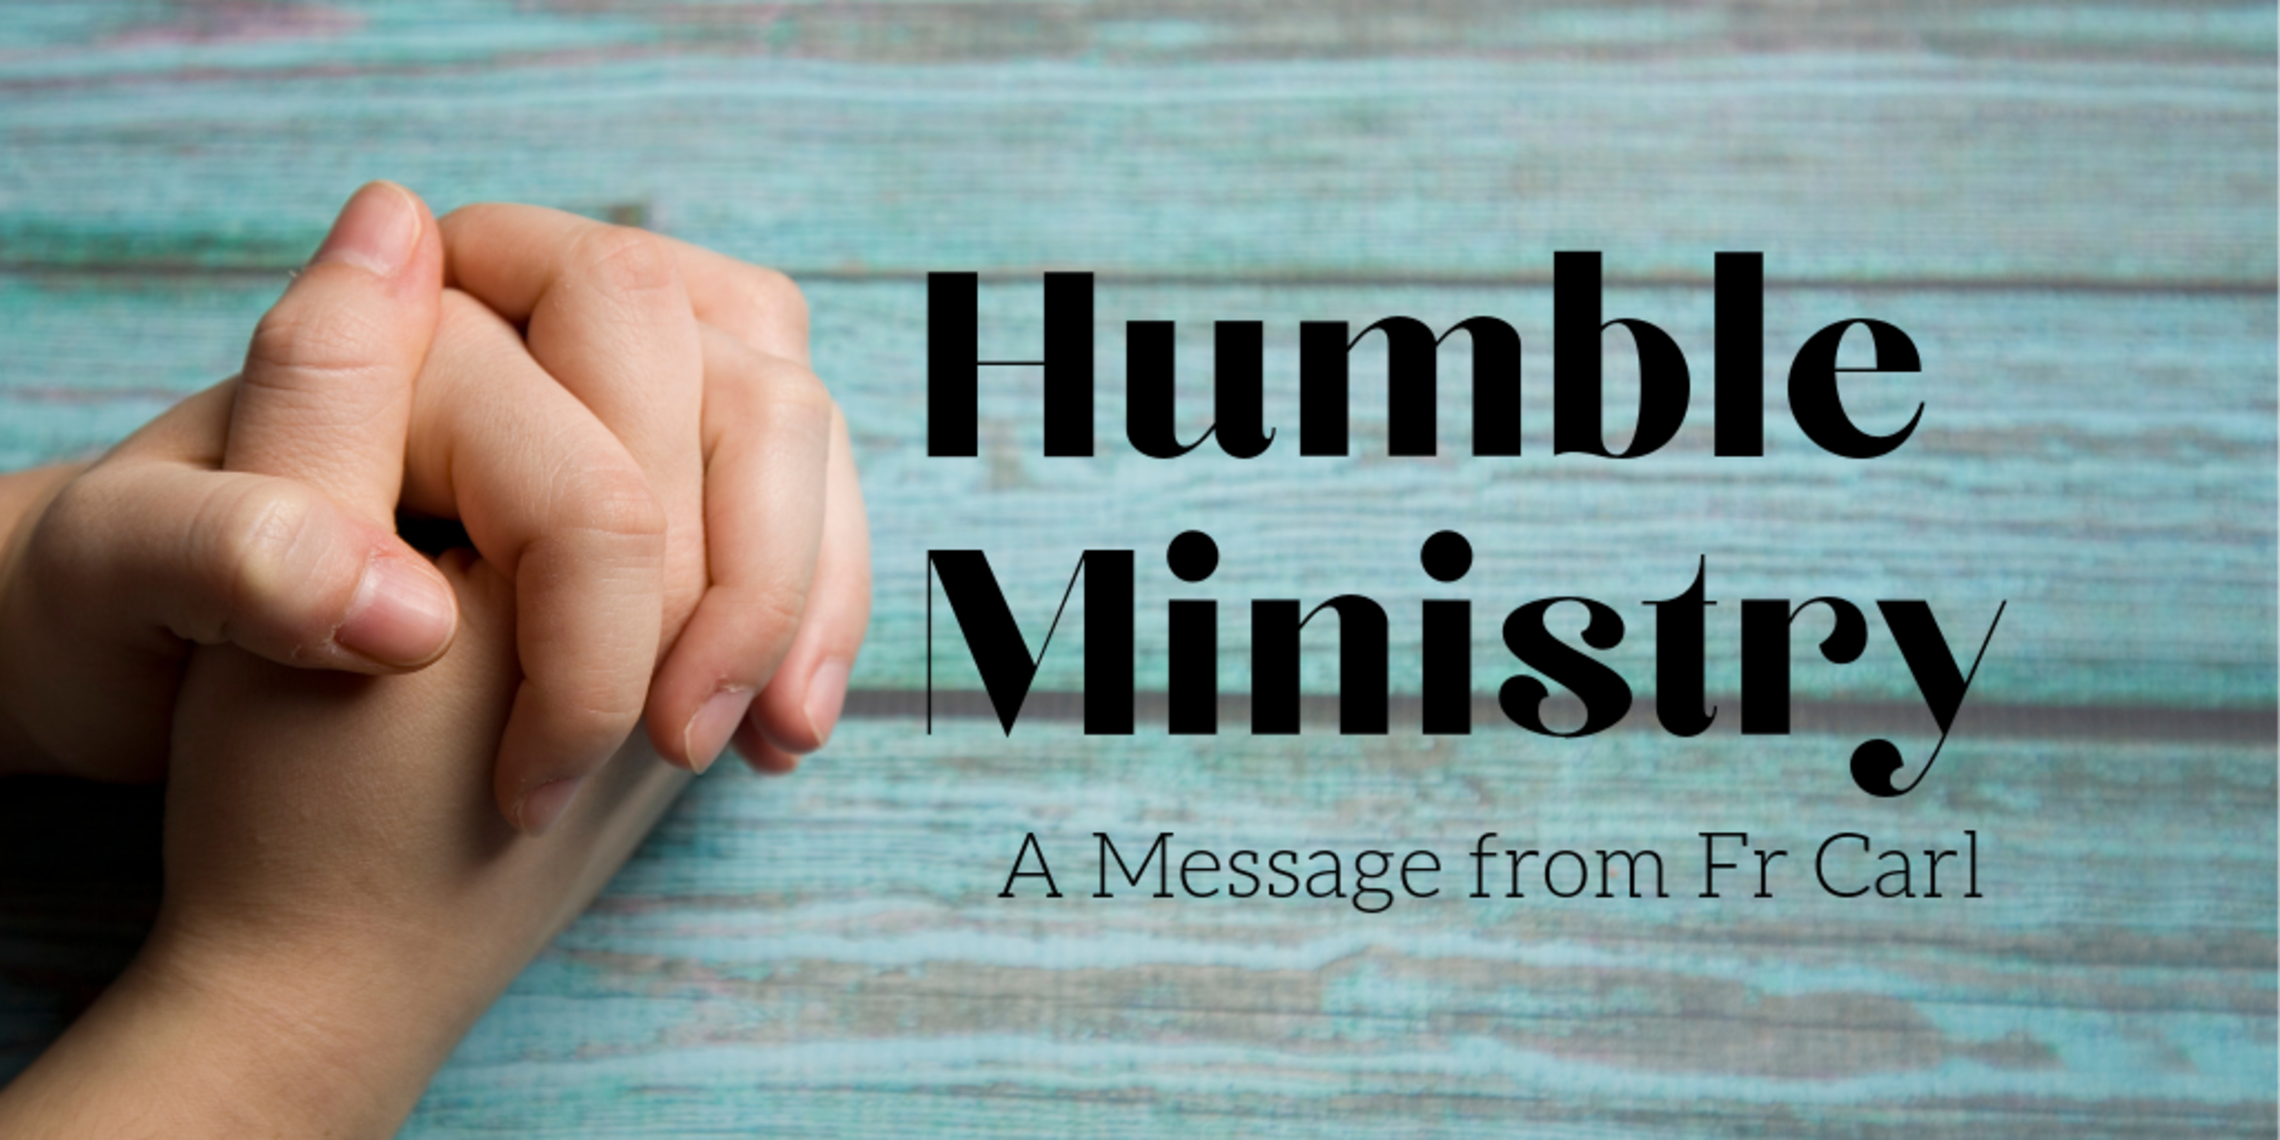 Humble Ministry